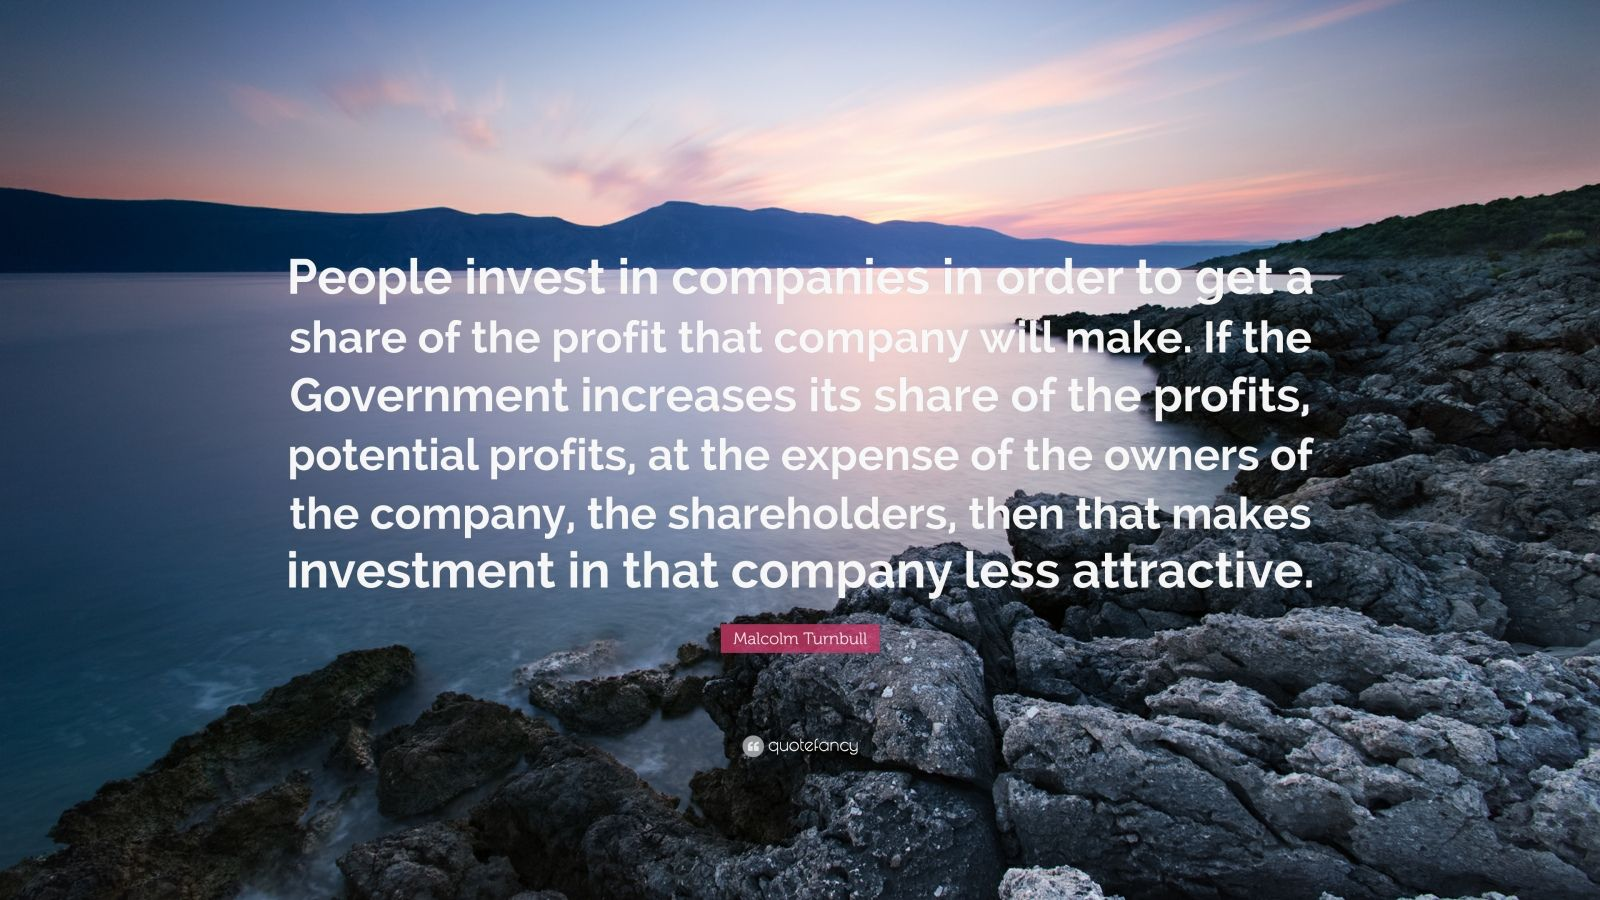 "Malcolm Turnbull Quote: ""People invest in companies in order to get a share of the profit that company will make. If the Government increases its share of the profits, potential profits, at the expense of the owners of the company, the shareholders, then that makes investment in that company less attractive."""